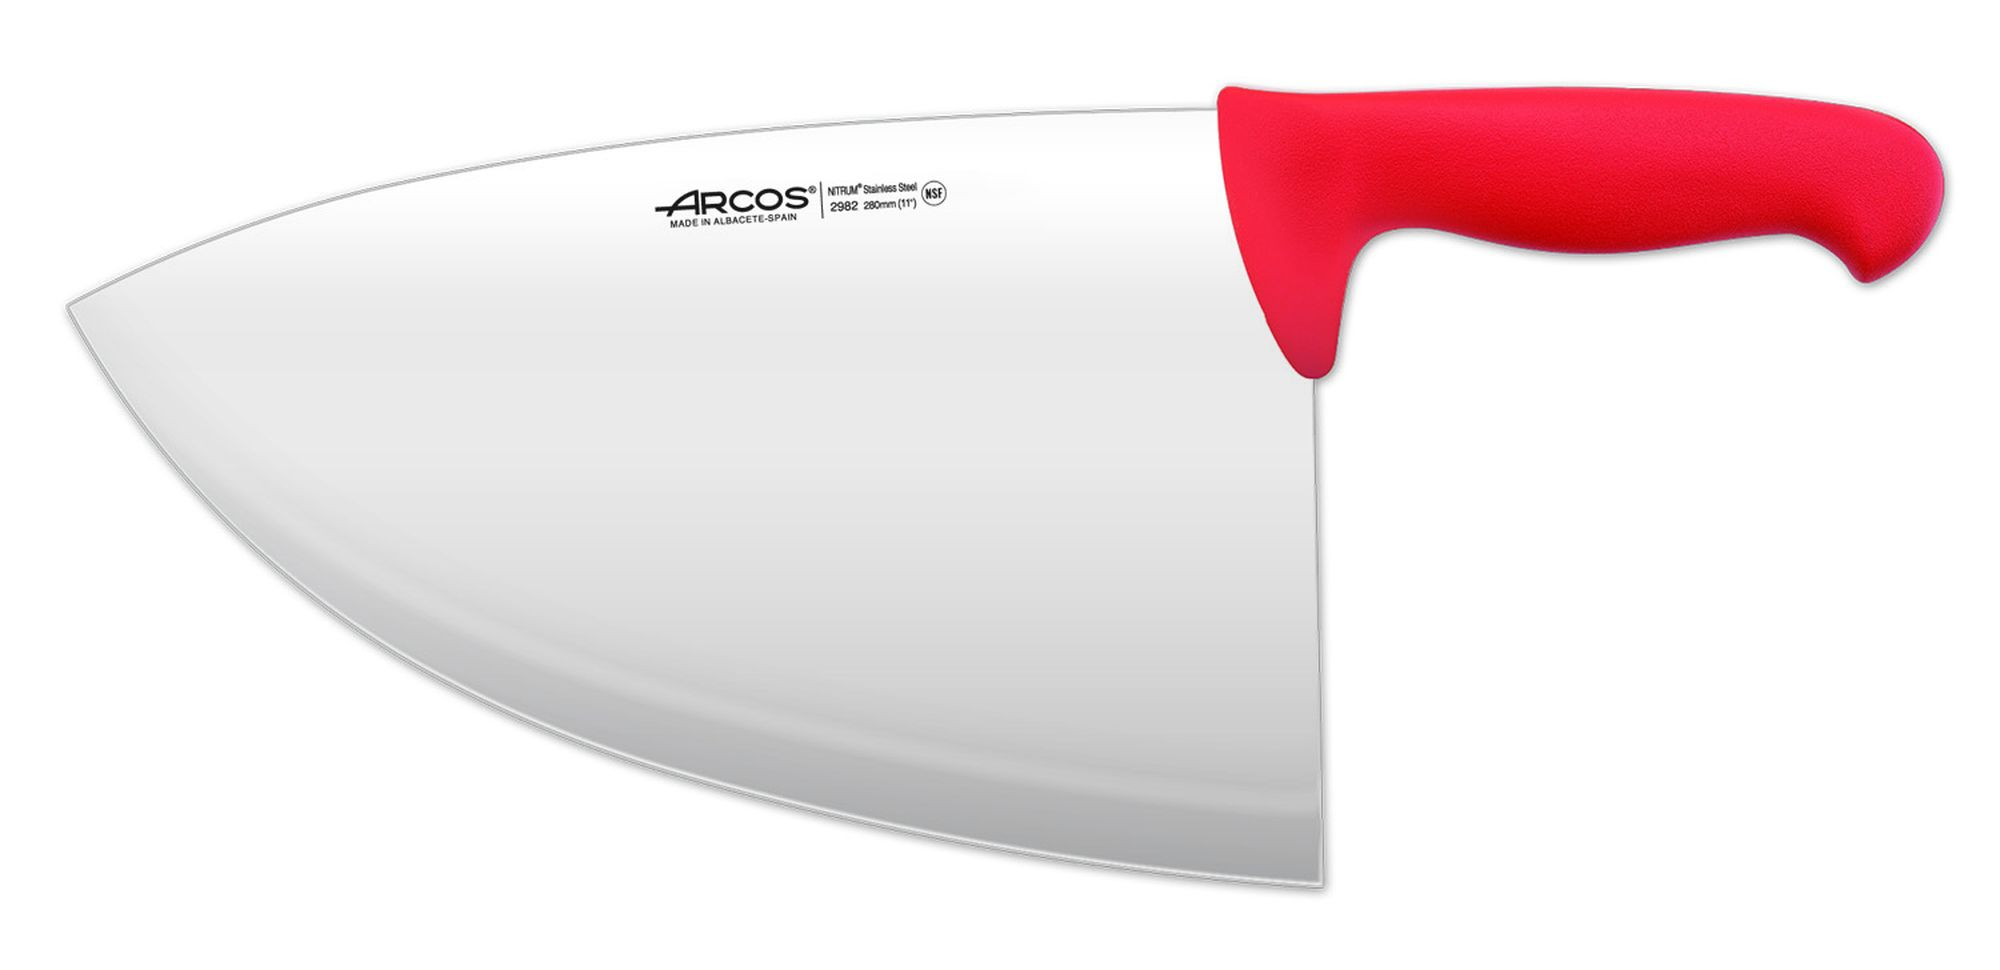 Cleaver Arcos ref.: 298222